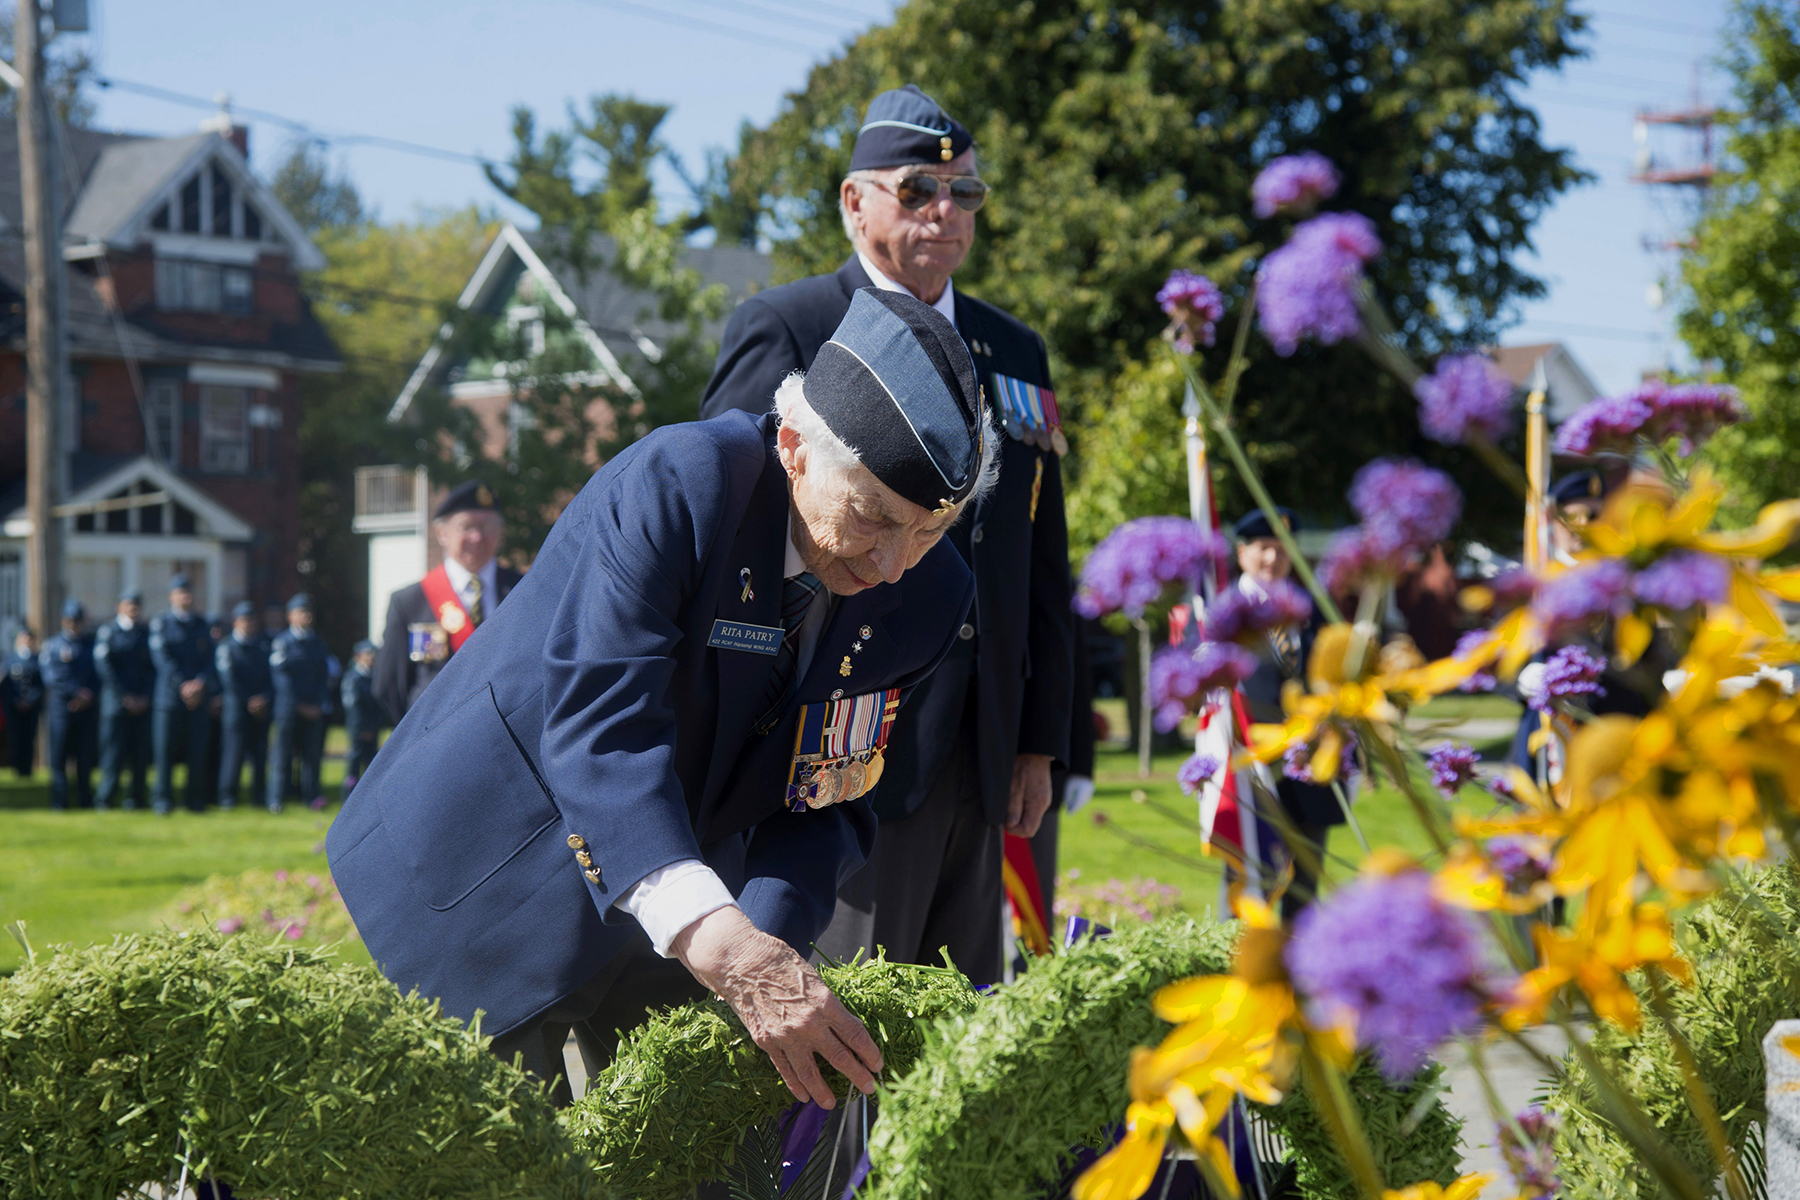 On September 15, 2019, veteran Rita Patry of 422 Squadron places a wreath at the Branch 23 Royal Canadian Legion cenotaph. Each year, members of 22 Wing/Canadian Forces Base North Bay, Ontario, hold a ceremony remembering the Battle of Britain, fought during the Second World War, in which Canadian pilots and their allies defended England against the German enemy. PHOTO: Corporal Rob Ouellette, NB01-2019-217-11